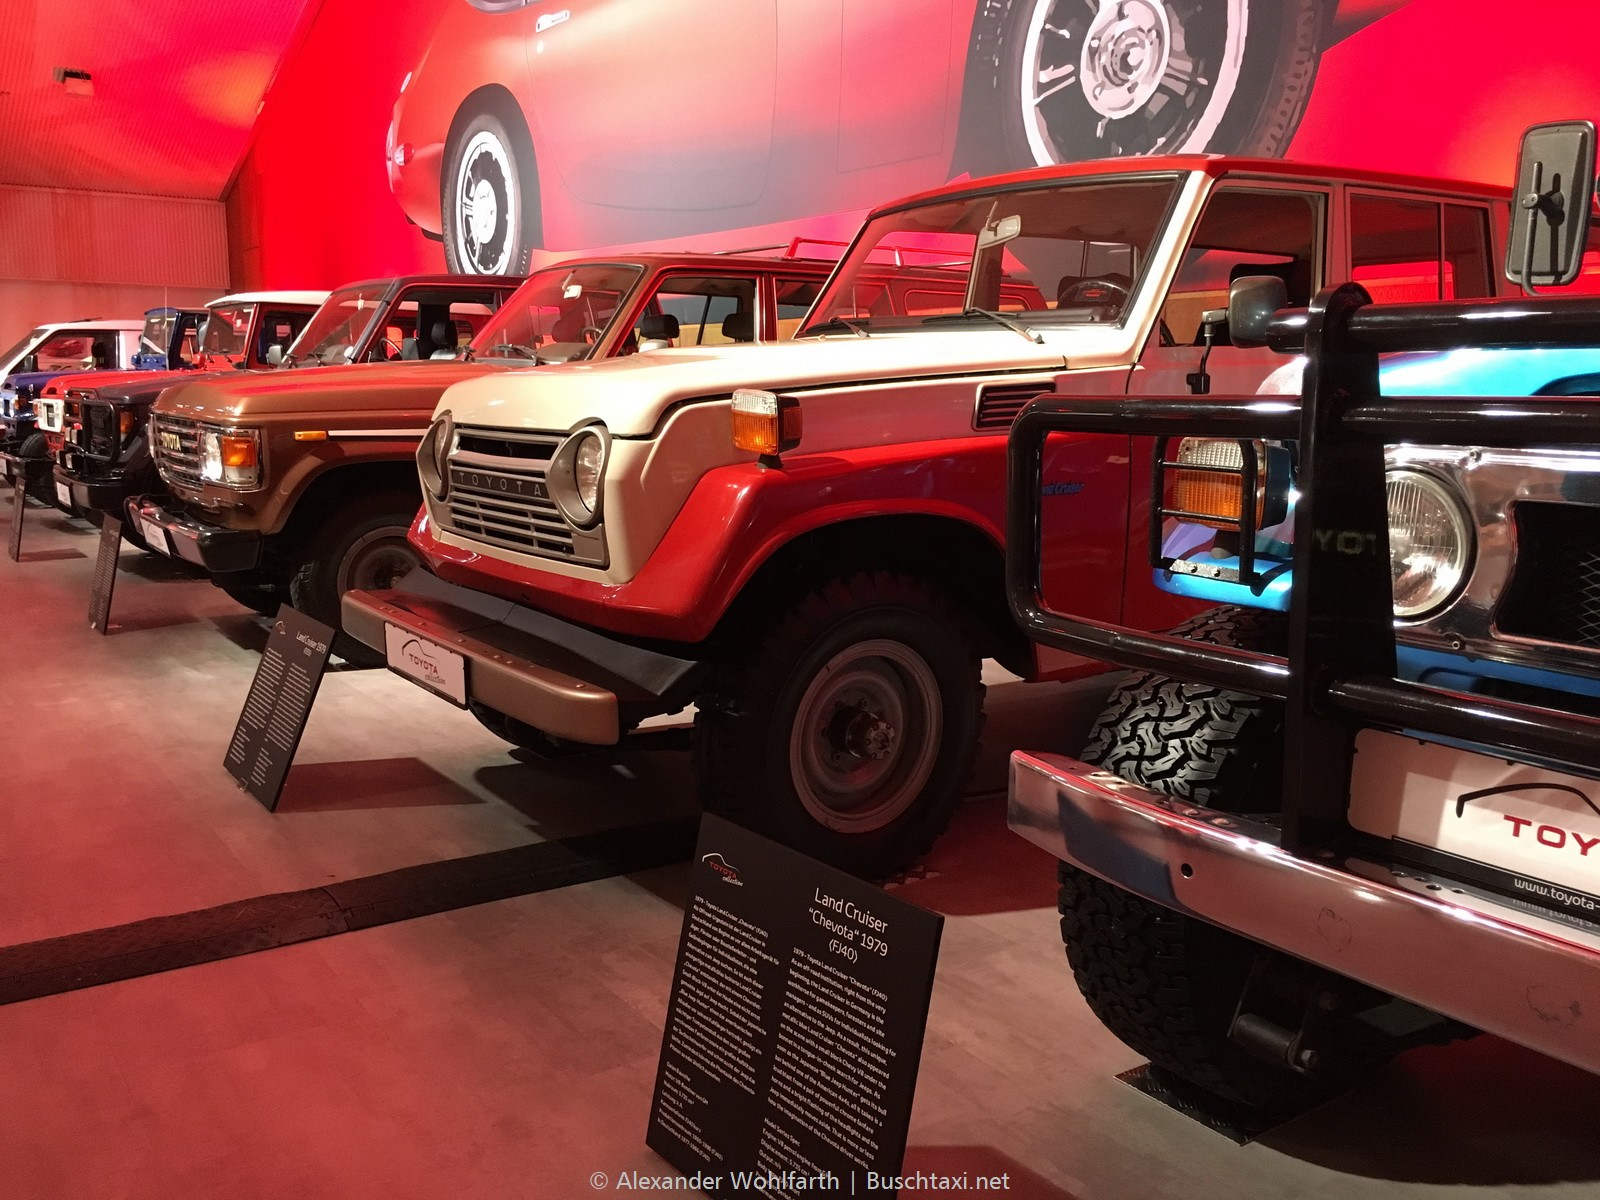 2017-11-23 toyota collection 10